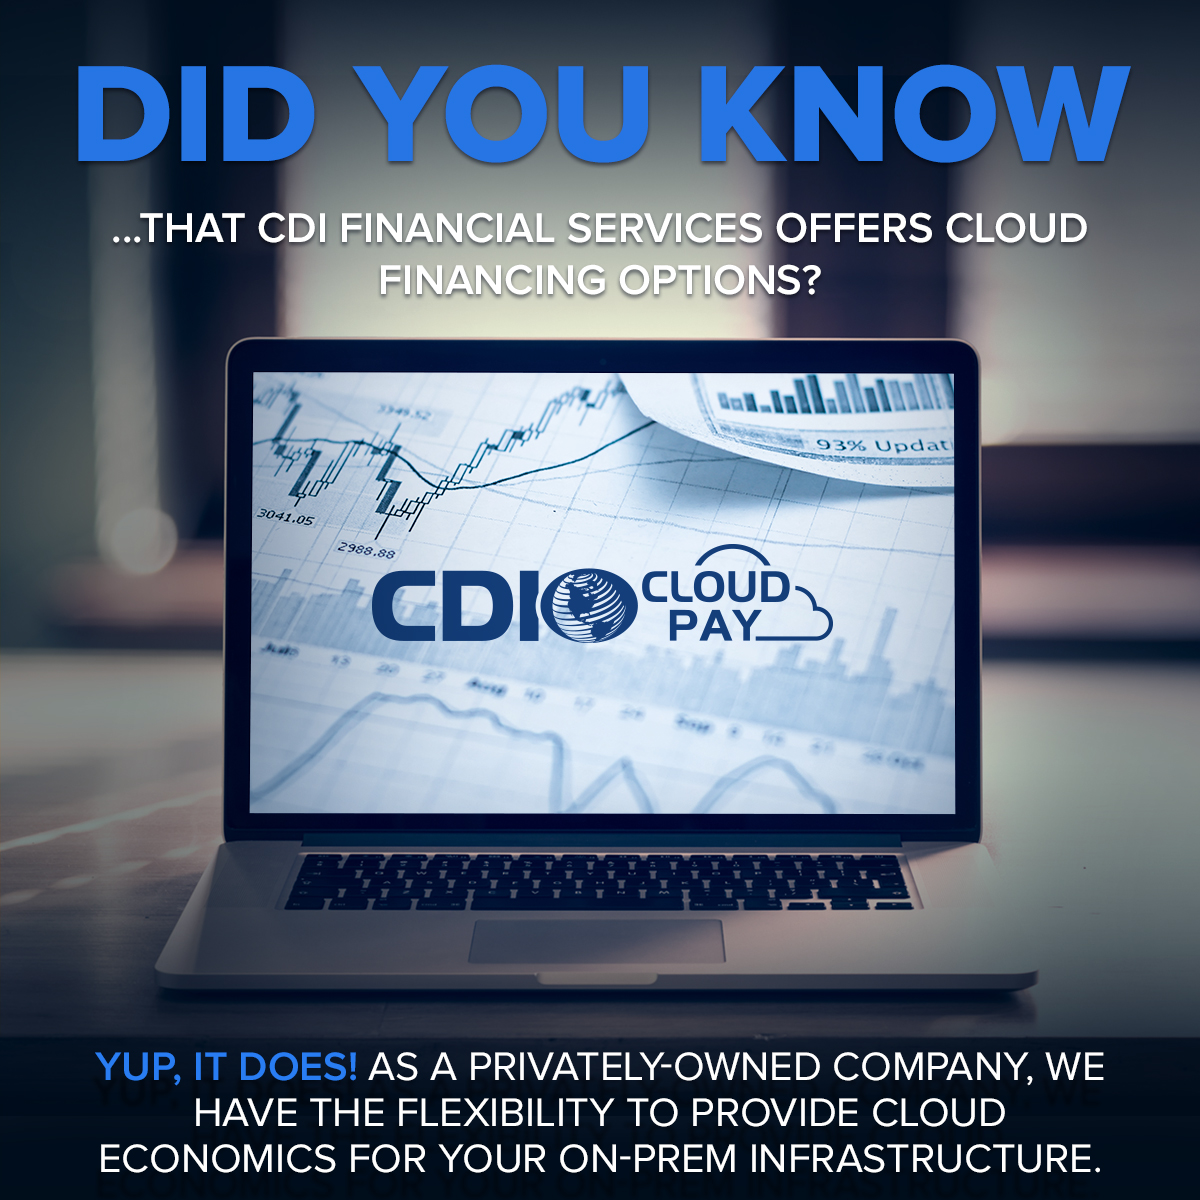 CDI Cloud Pay